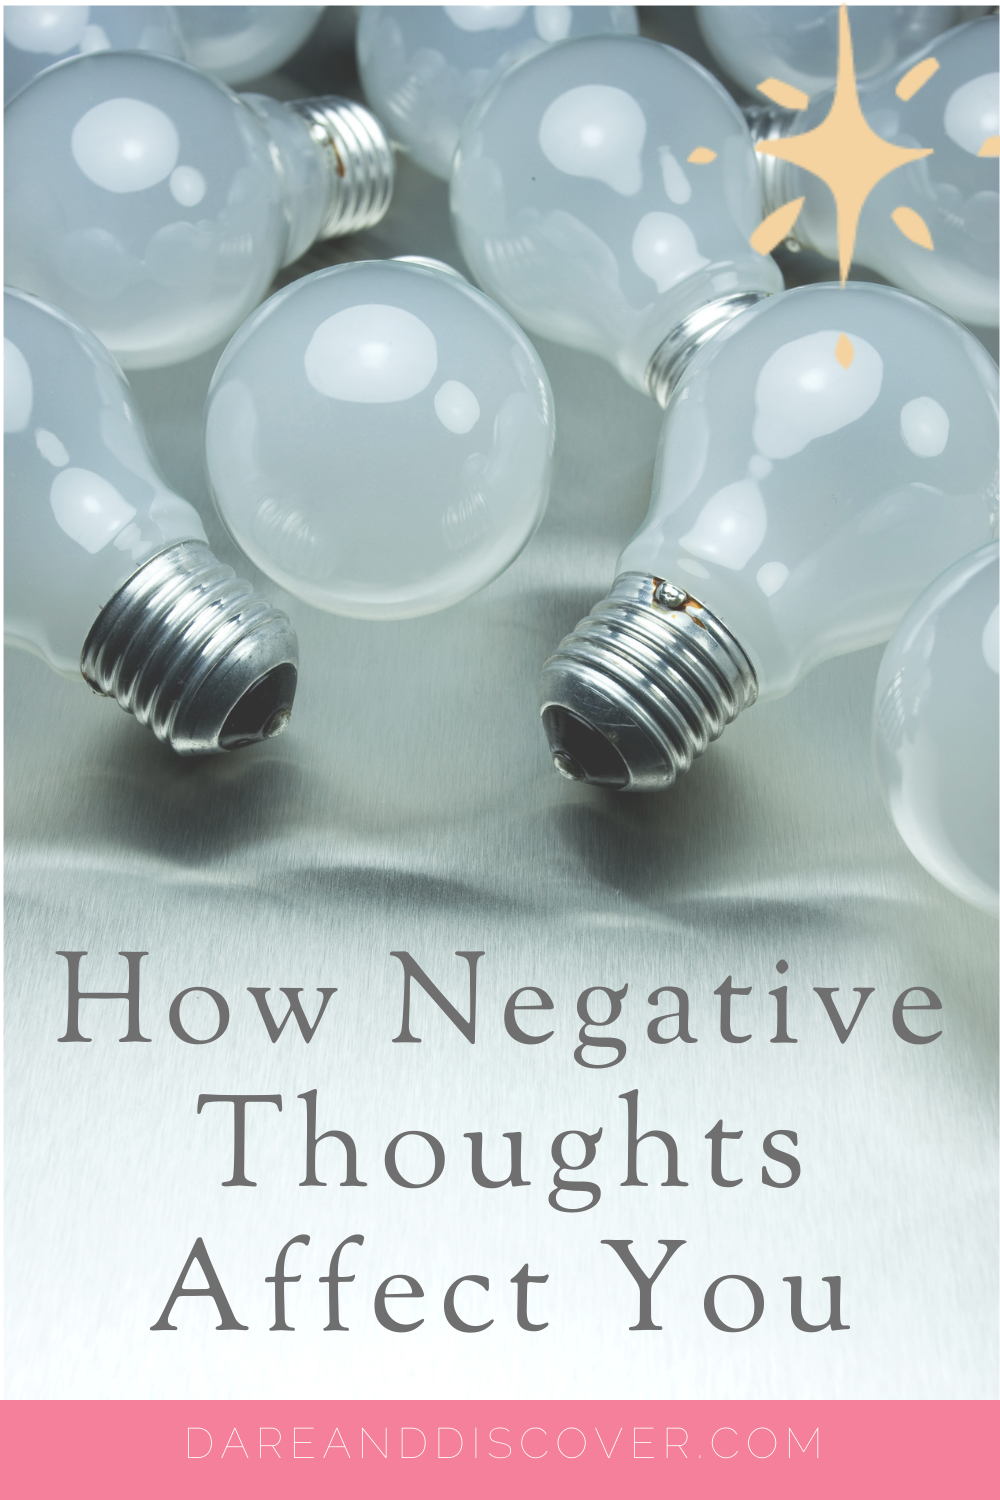 We all have negative thoughts, but if we let them get to us they can leave us feeling anxious, depressed, and low in motivation. If we can challenge our negative thoughts then this can help us feel better and help keep us moving forward | Negative thoughts | Negative Thinking | Unhelpful Thinking | Mindfulness | #NegativeThinking #ThoughtsAndFeelings #Mindfulness